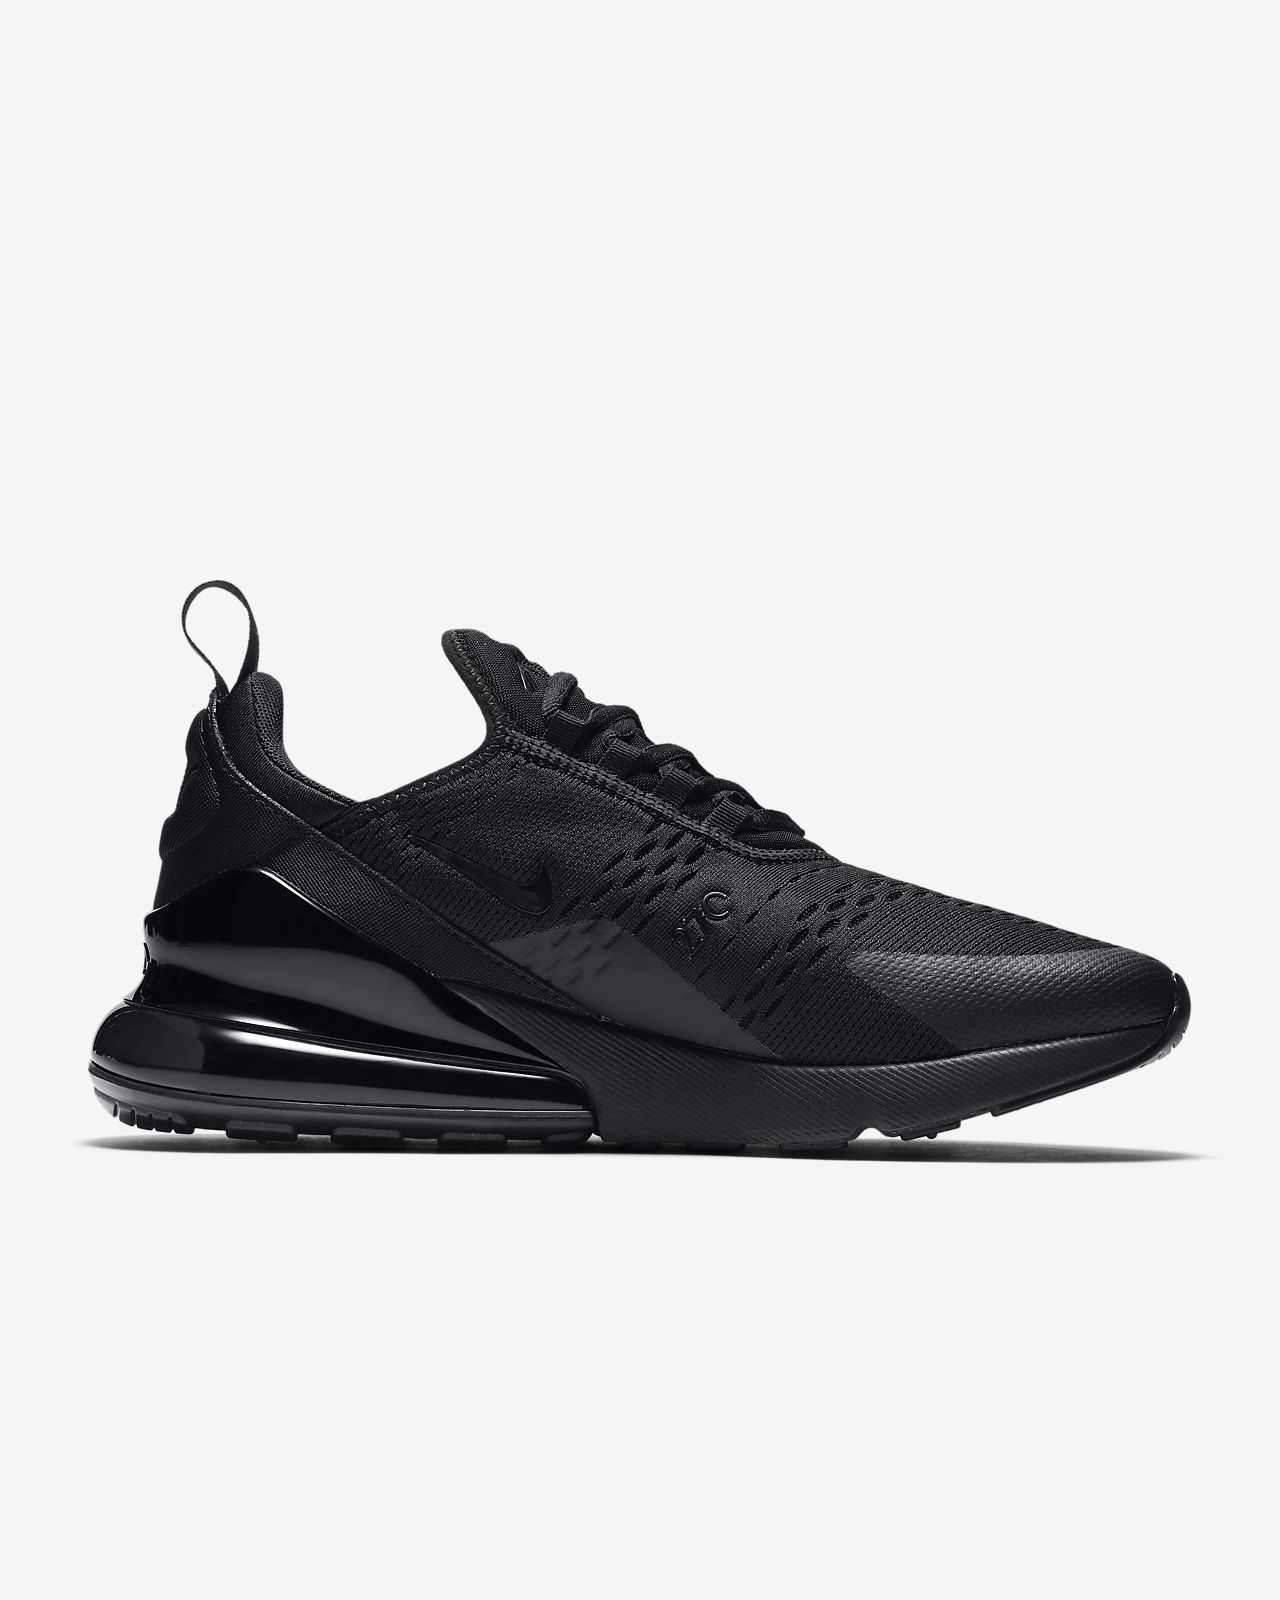 629c99a97d0 ... Nike Air Max 270 Men s Shoe